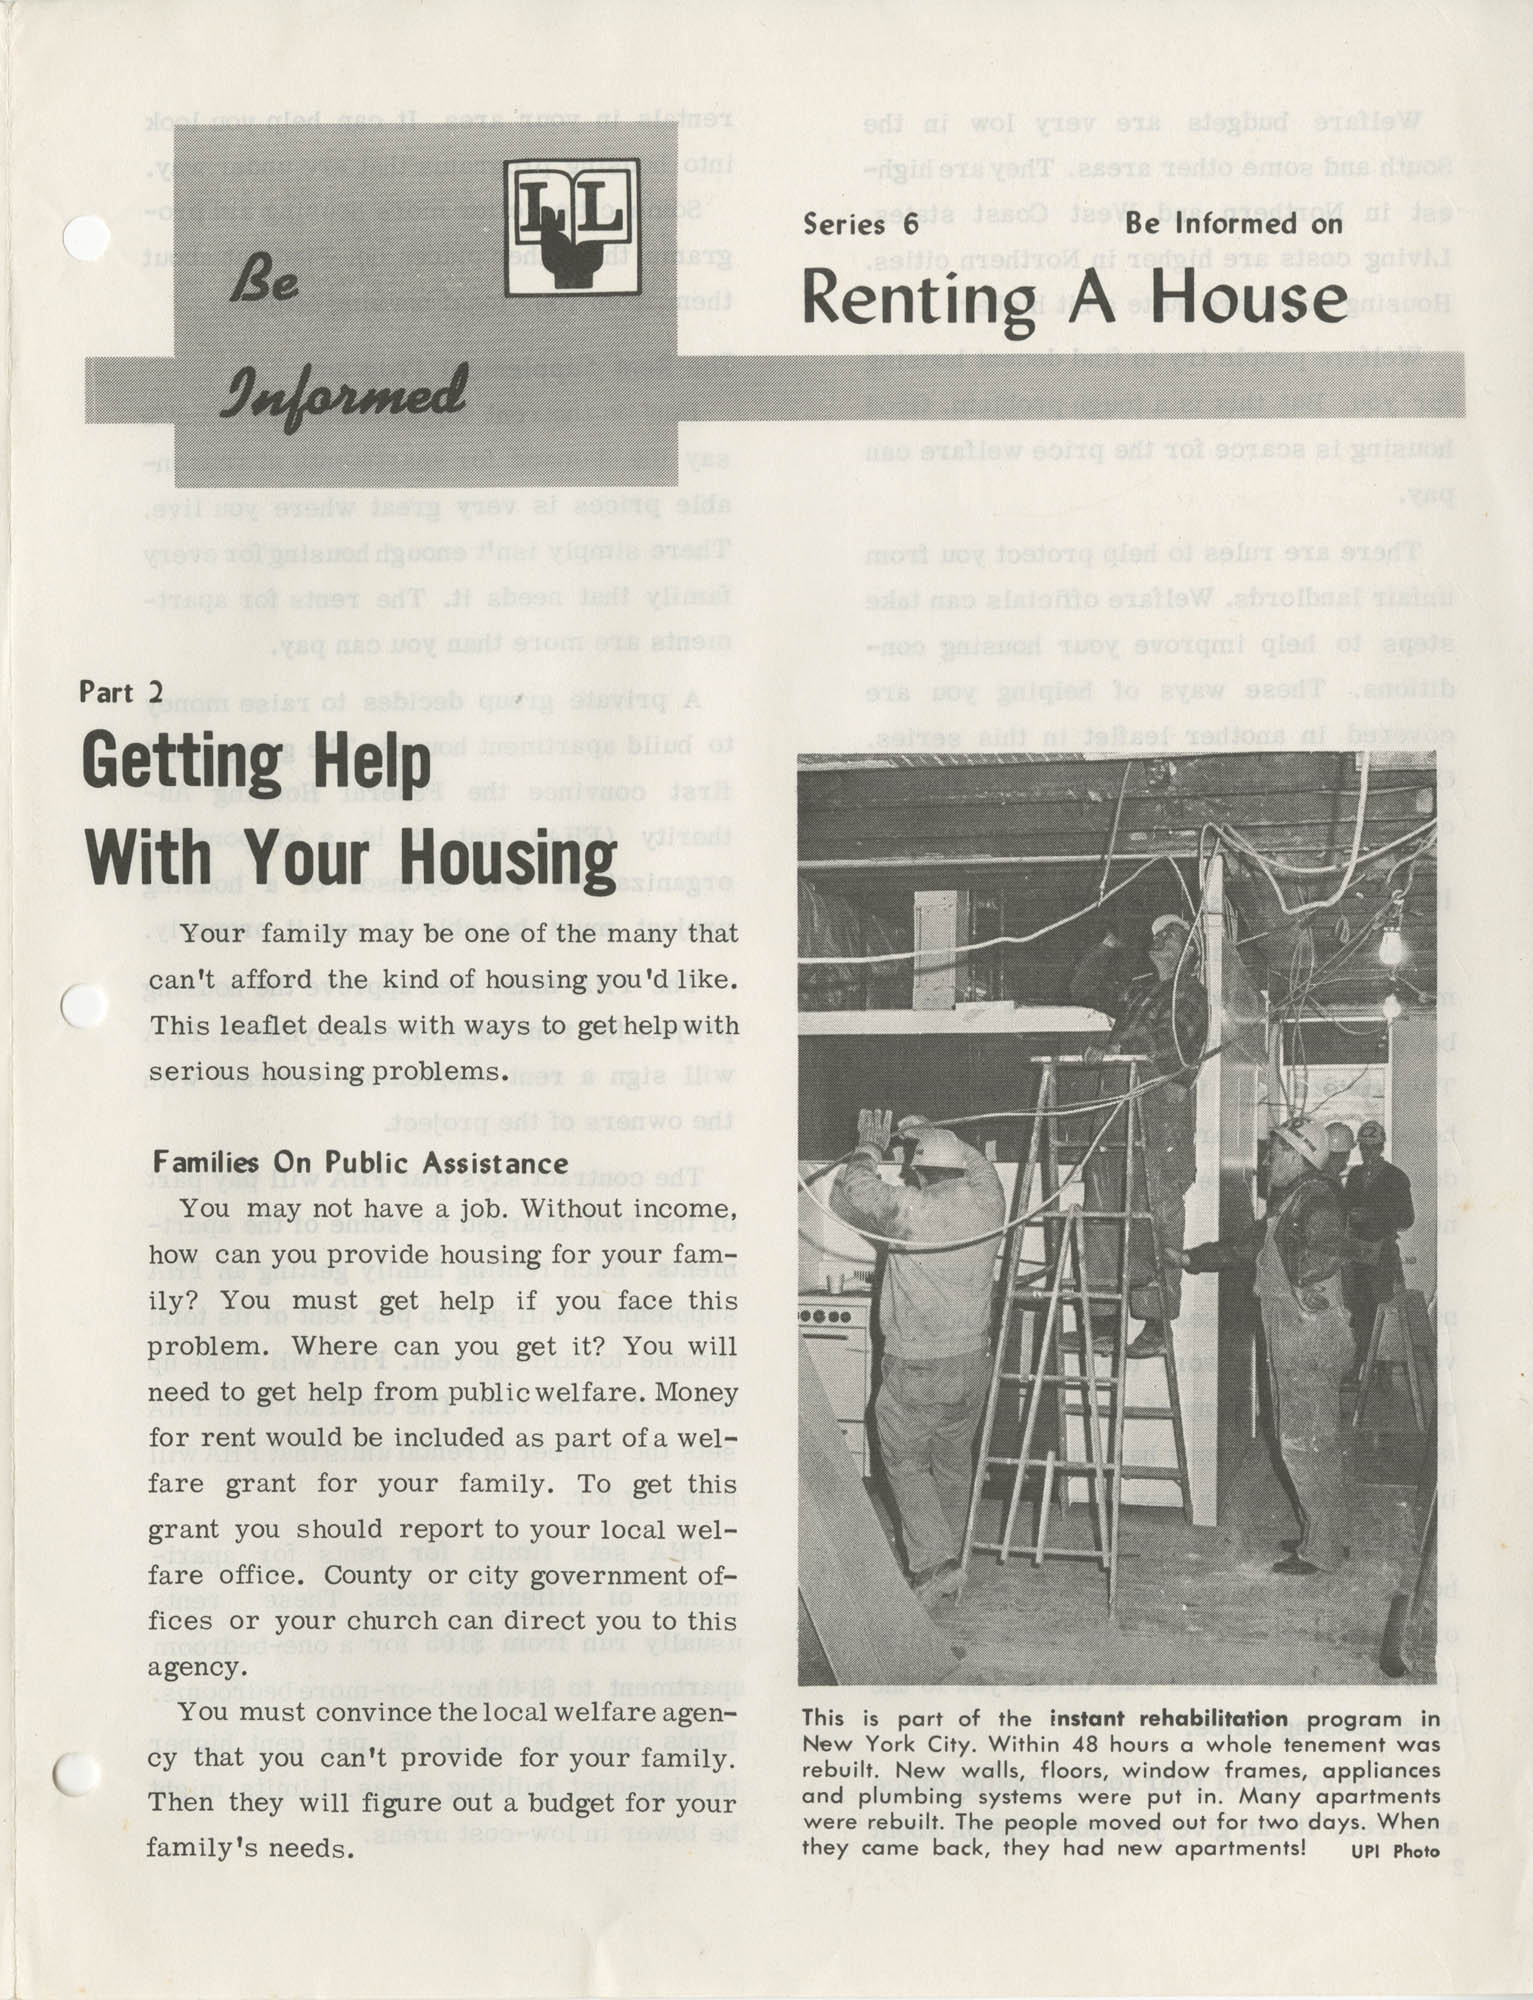 Be Informed, Renting A House, Part 2